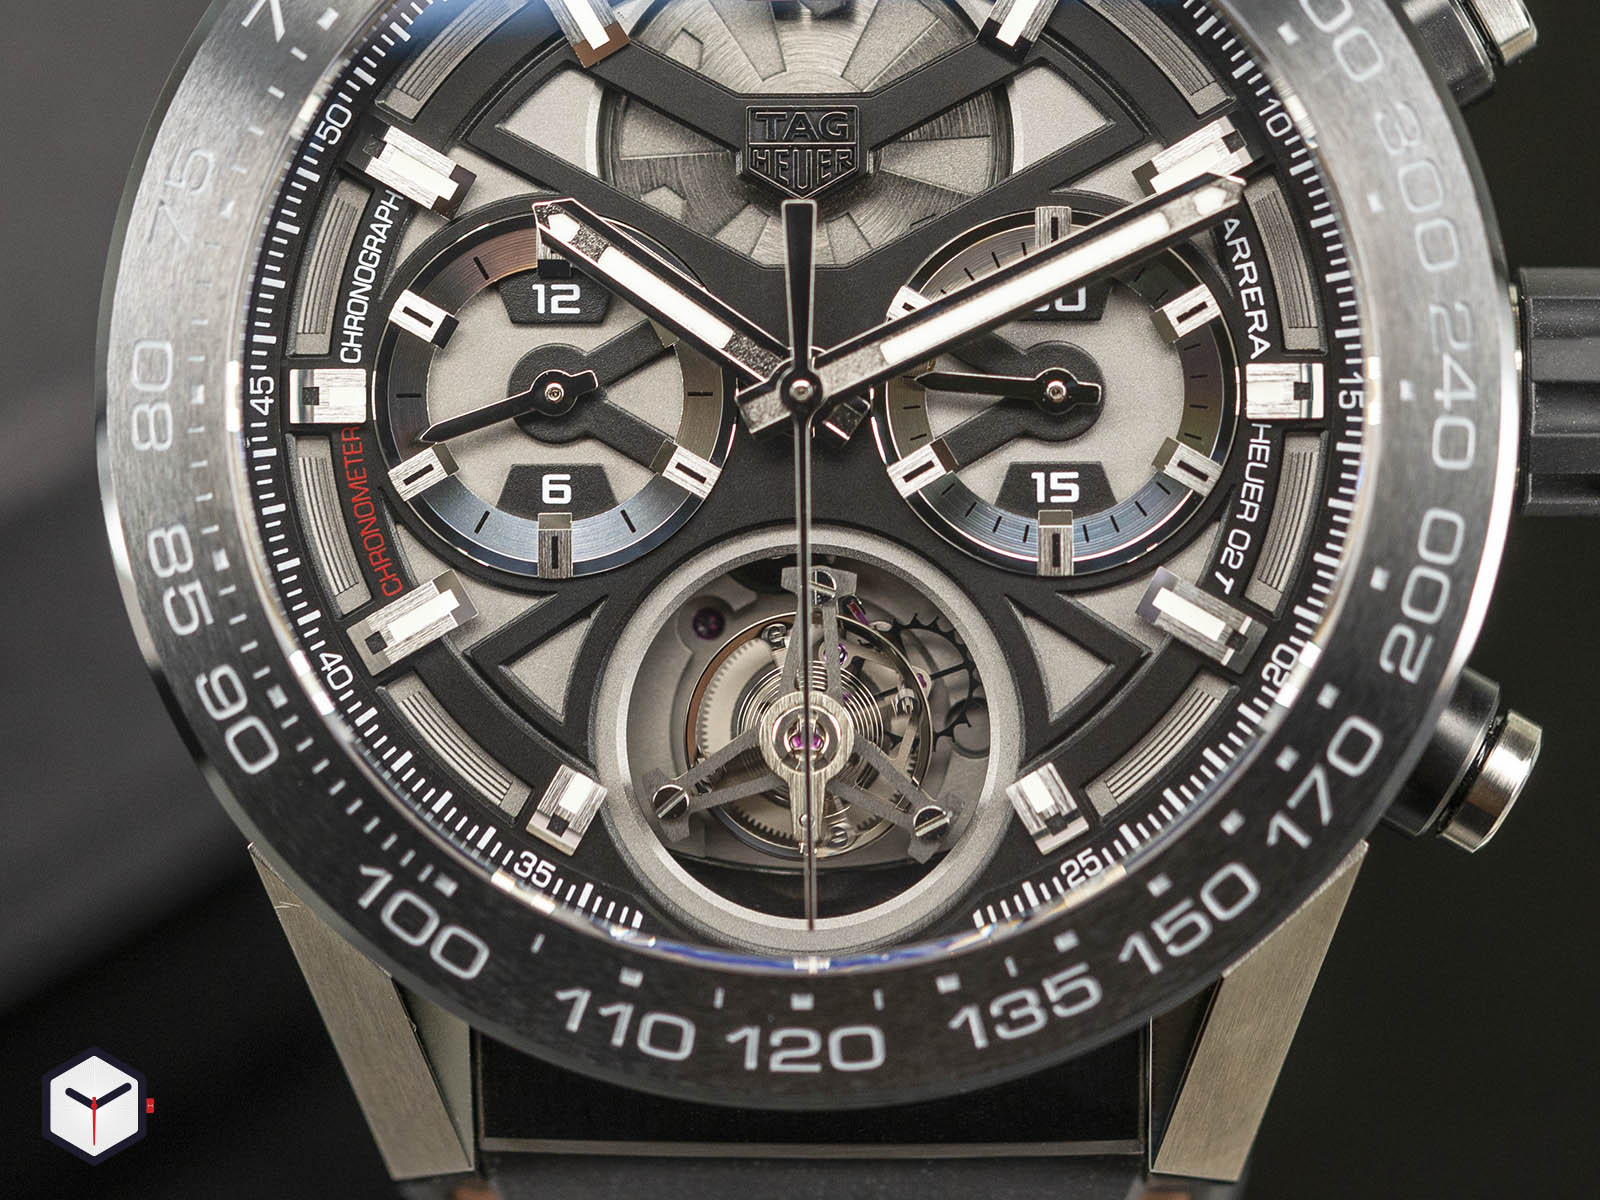 car5a8y-ft6072-tag-heuer-carrera-calibre-heuer-02t-cosc-4.jpg